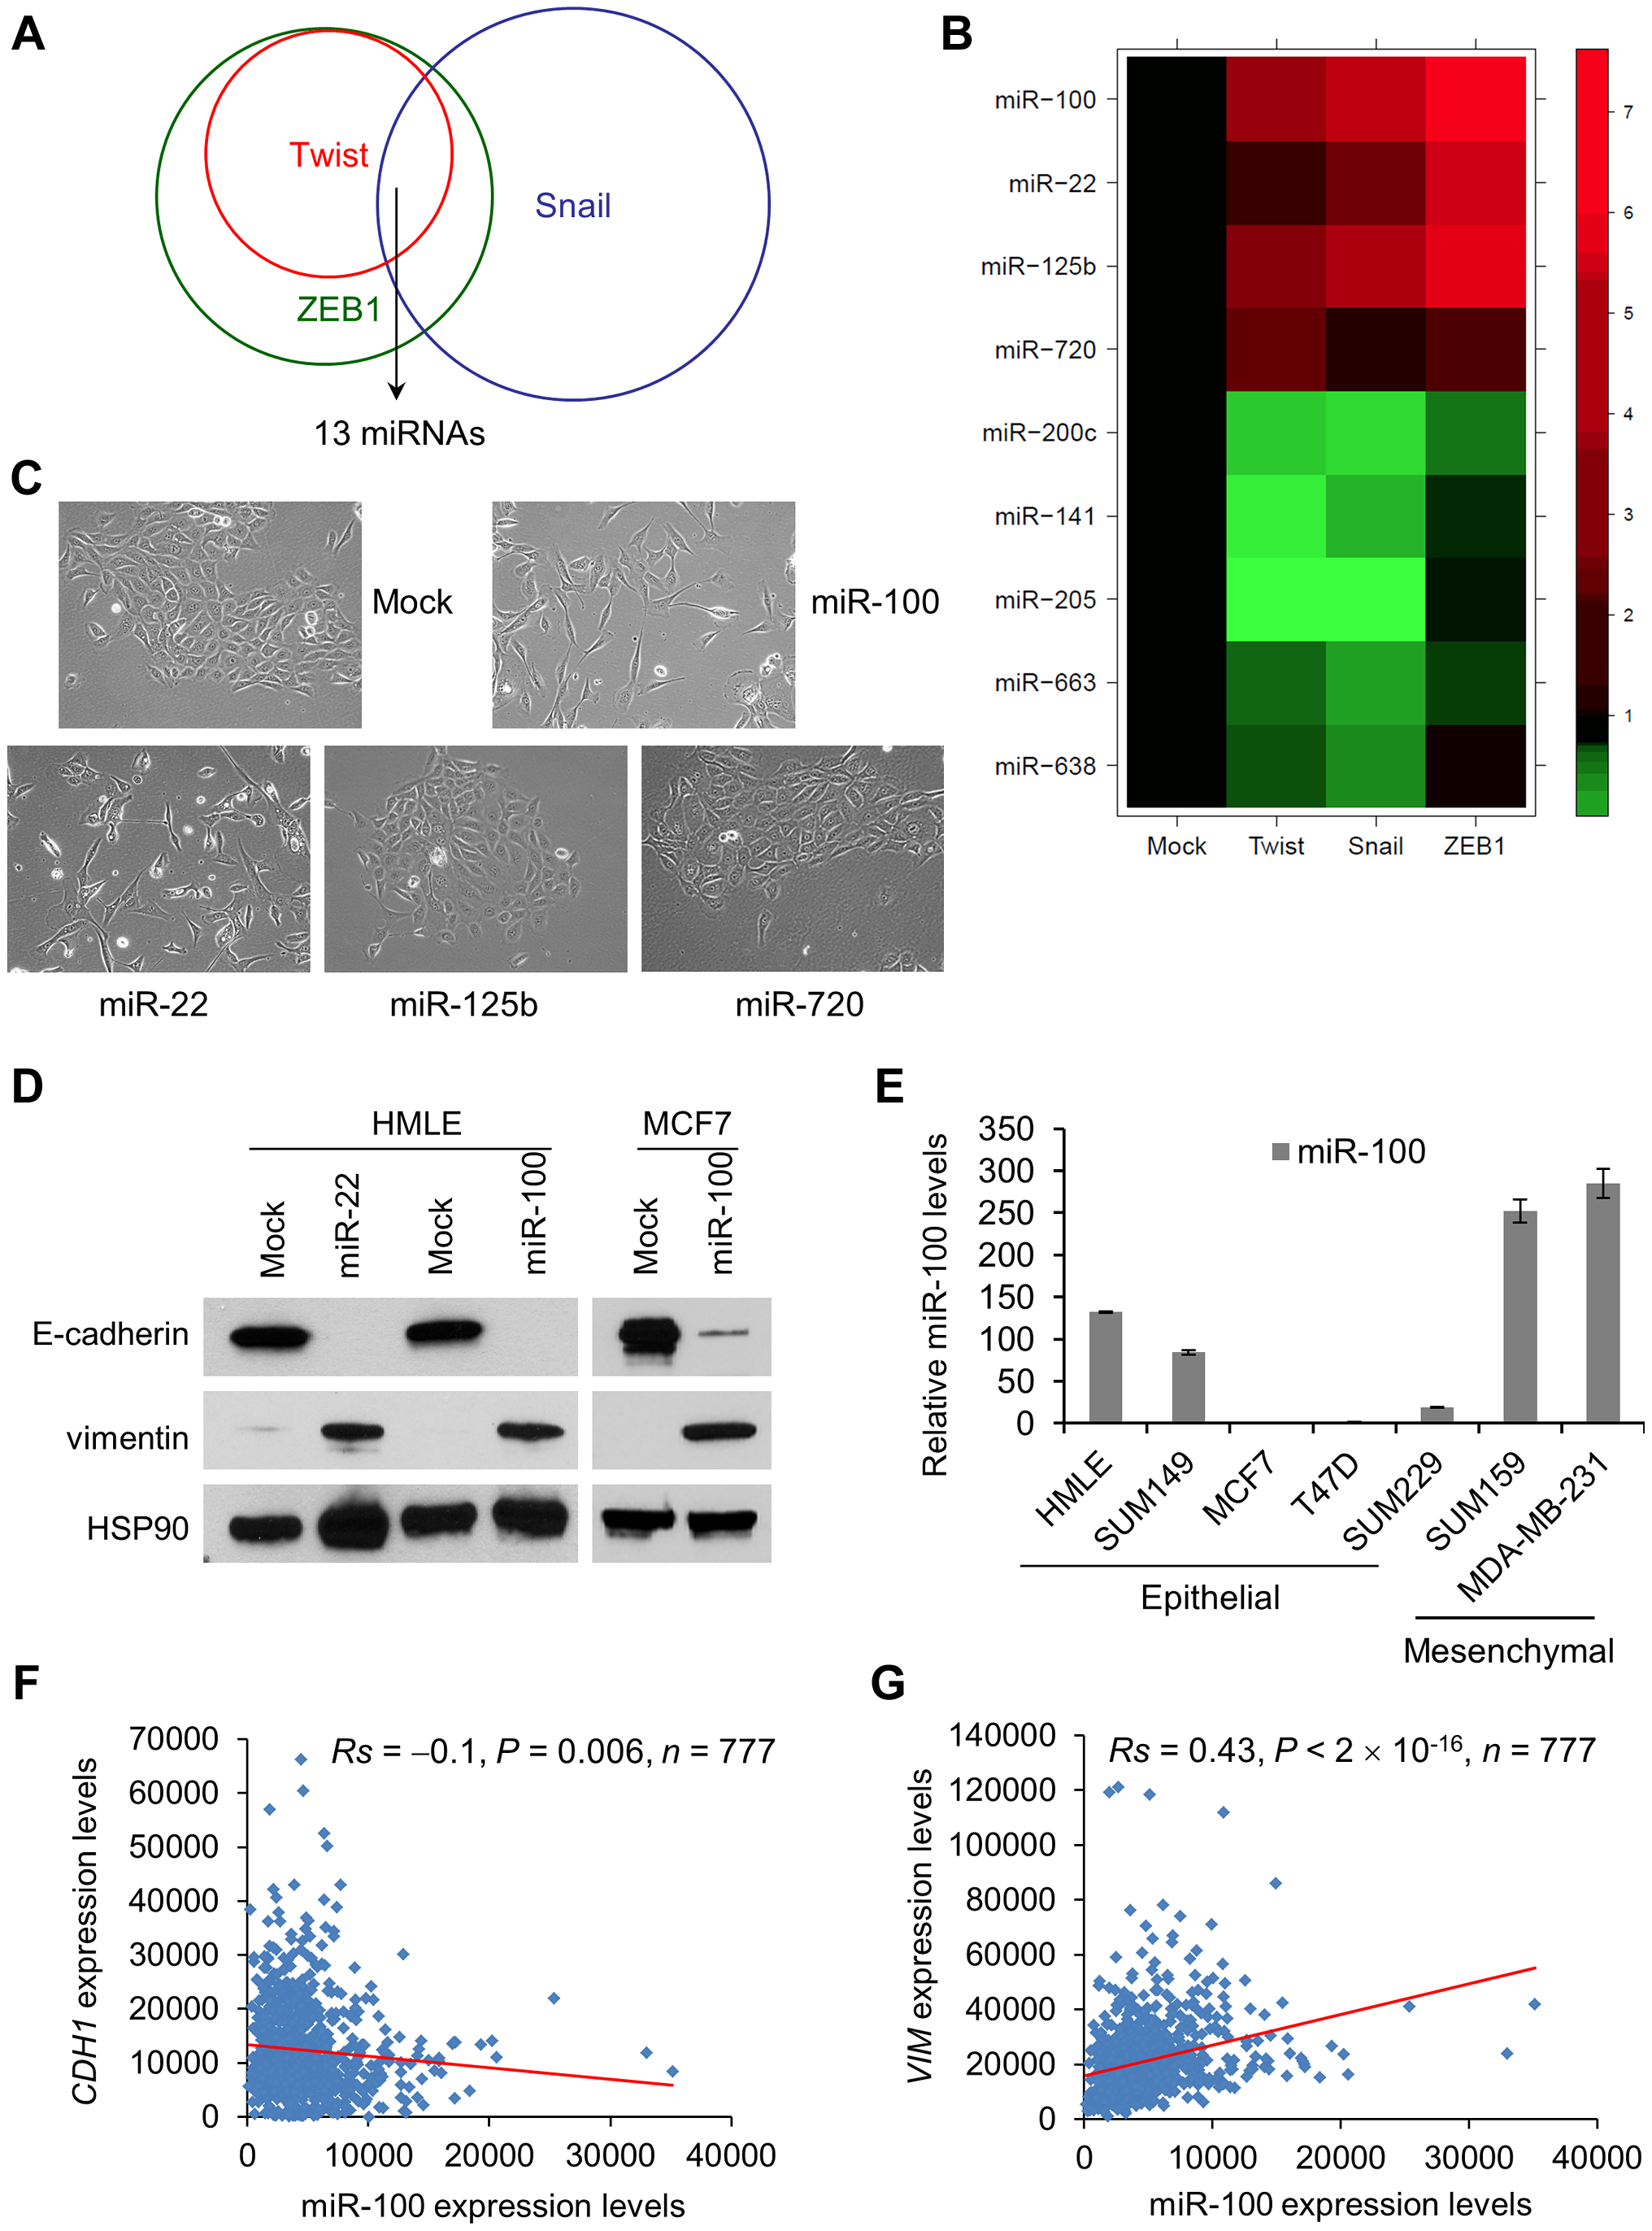 miR-100 induces EMT and correlates with the EMT state in human breast cancer.